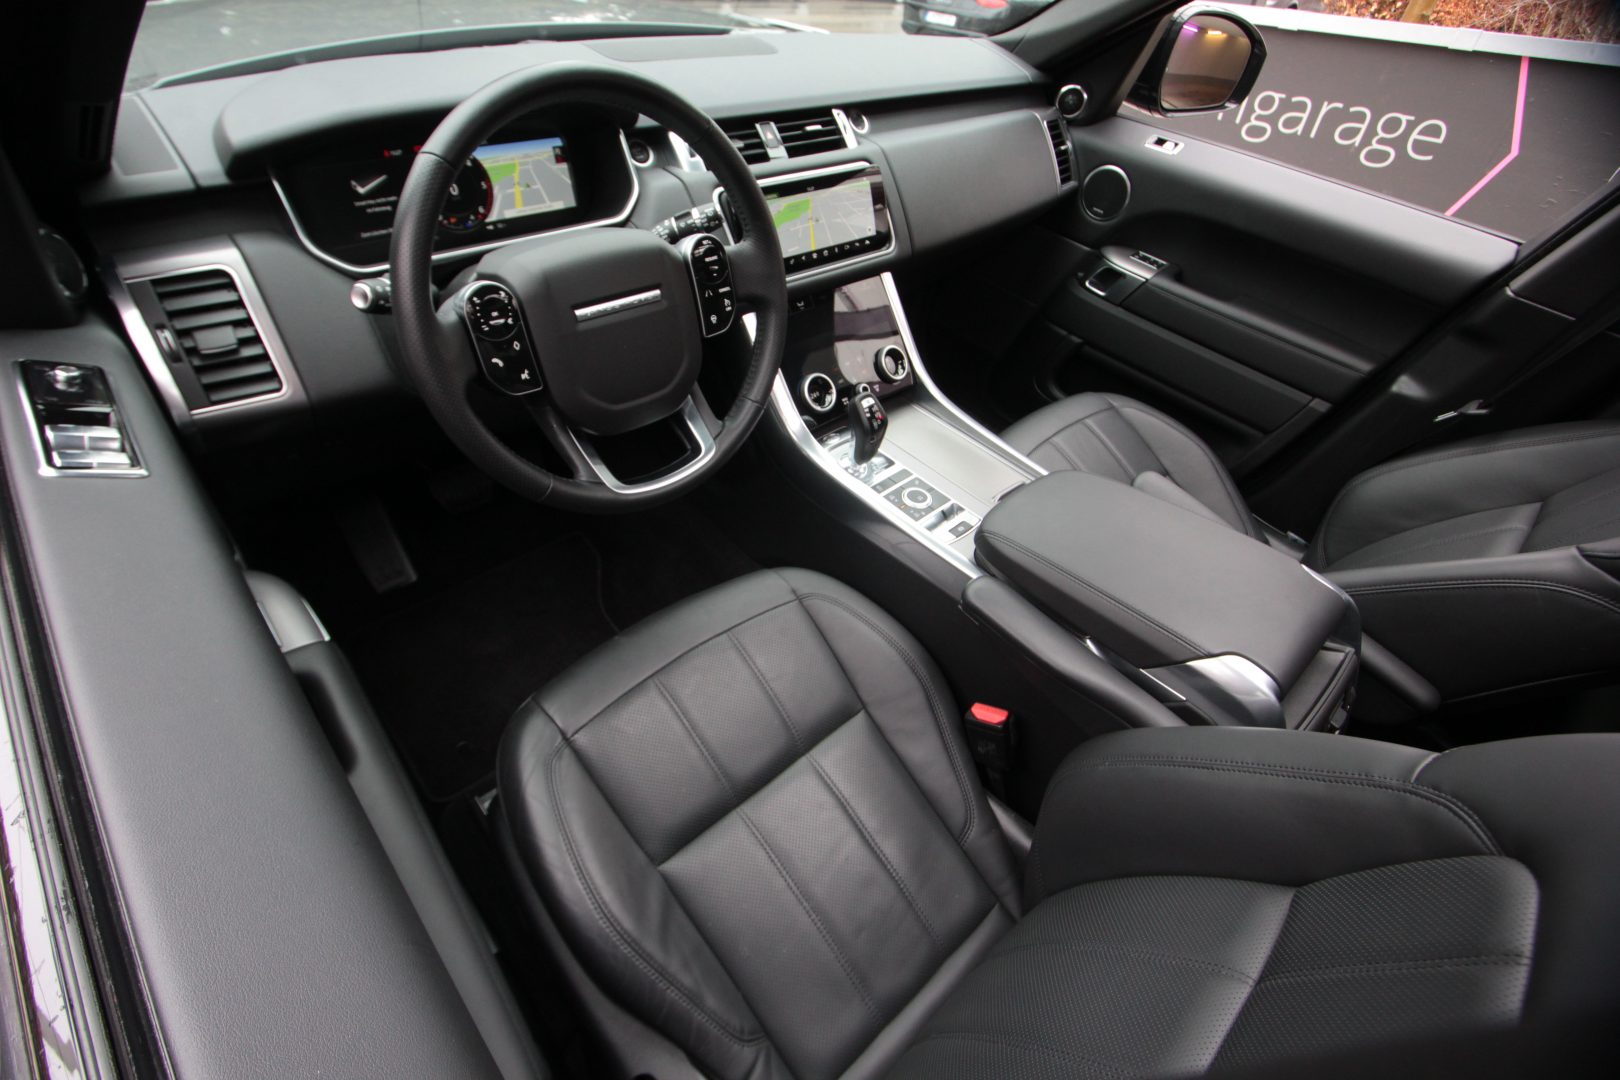 AIL Land Rover Range Rover Sport HSE 9